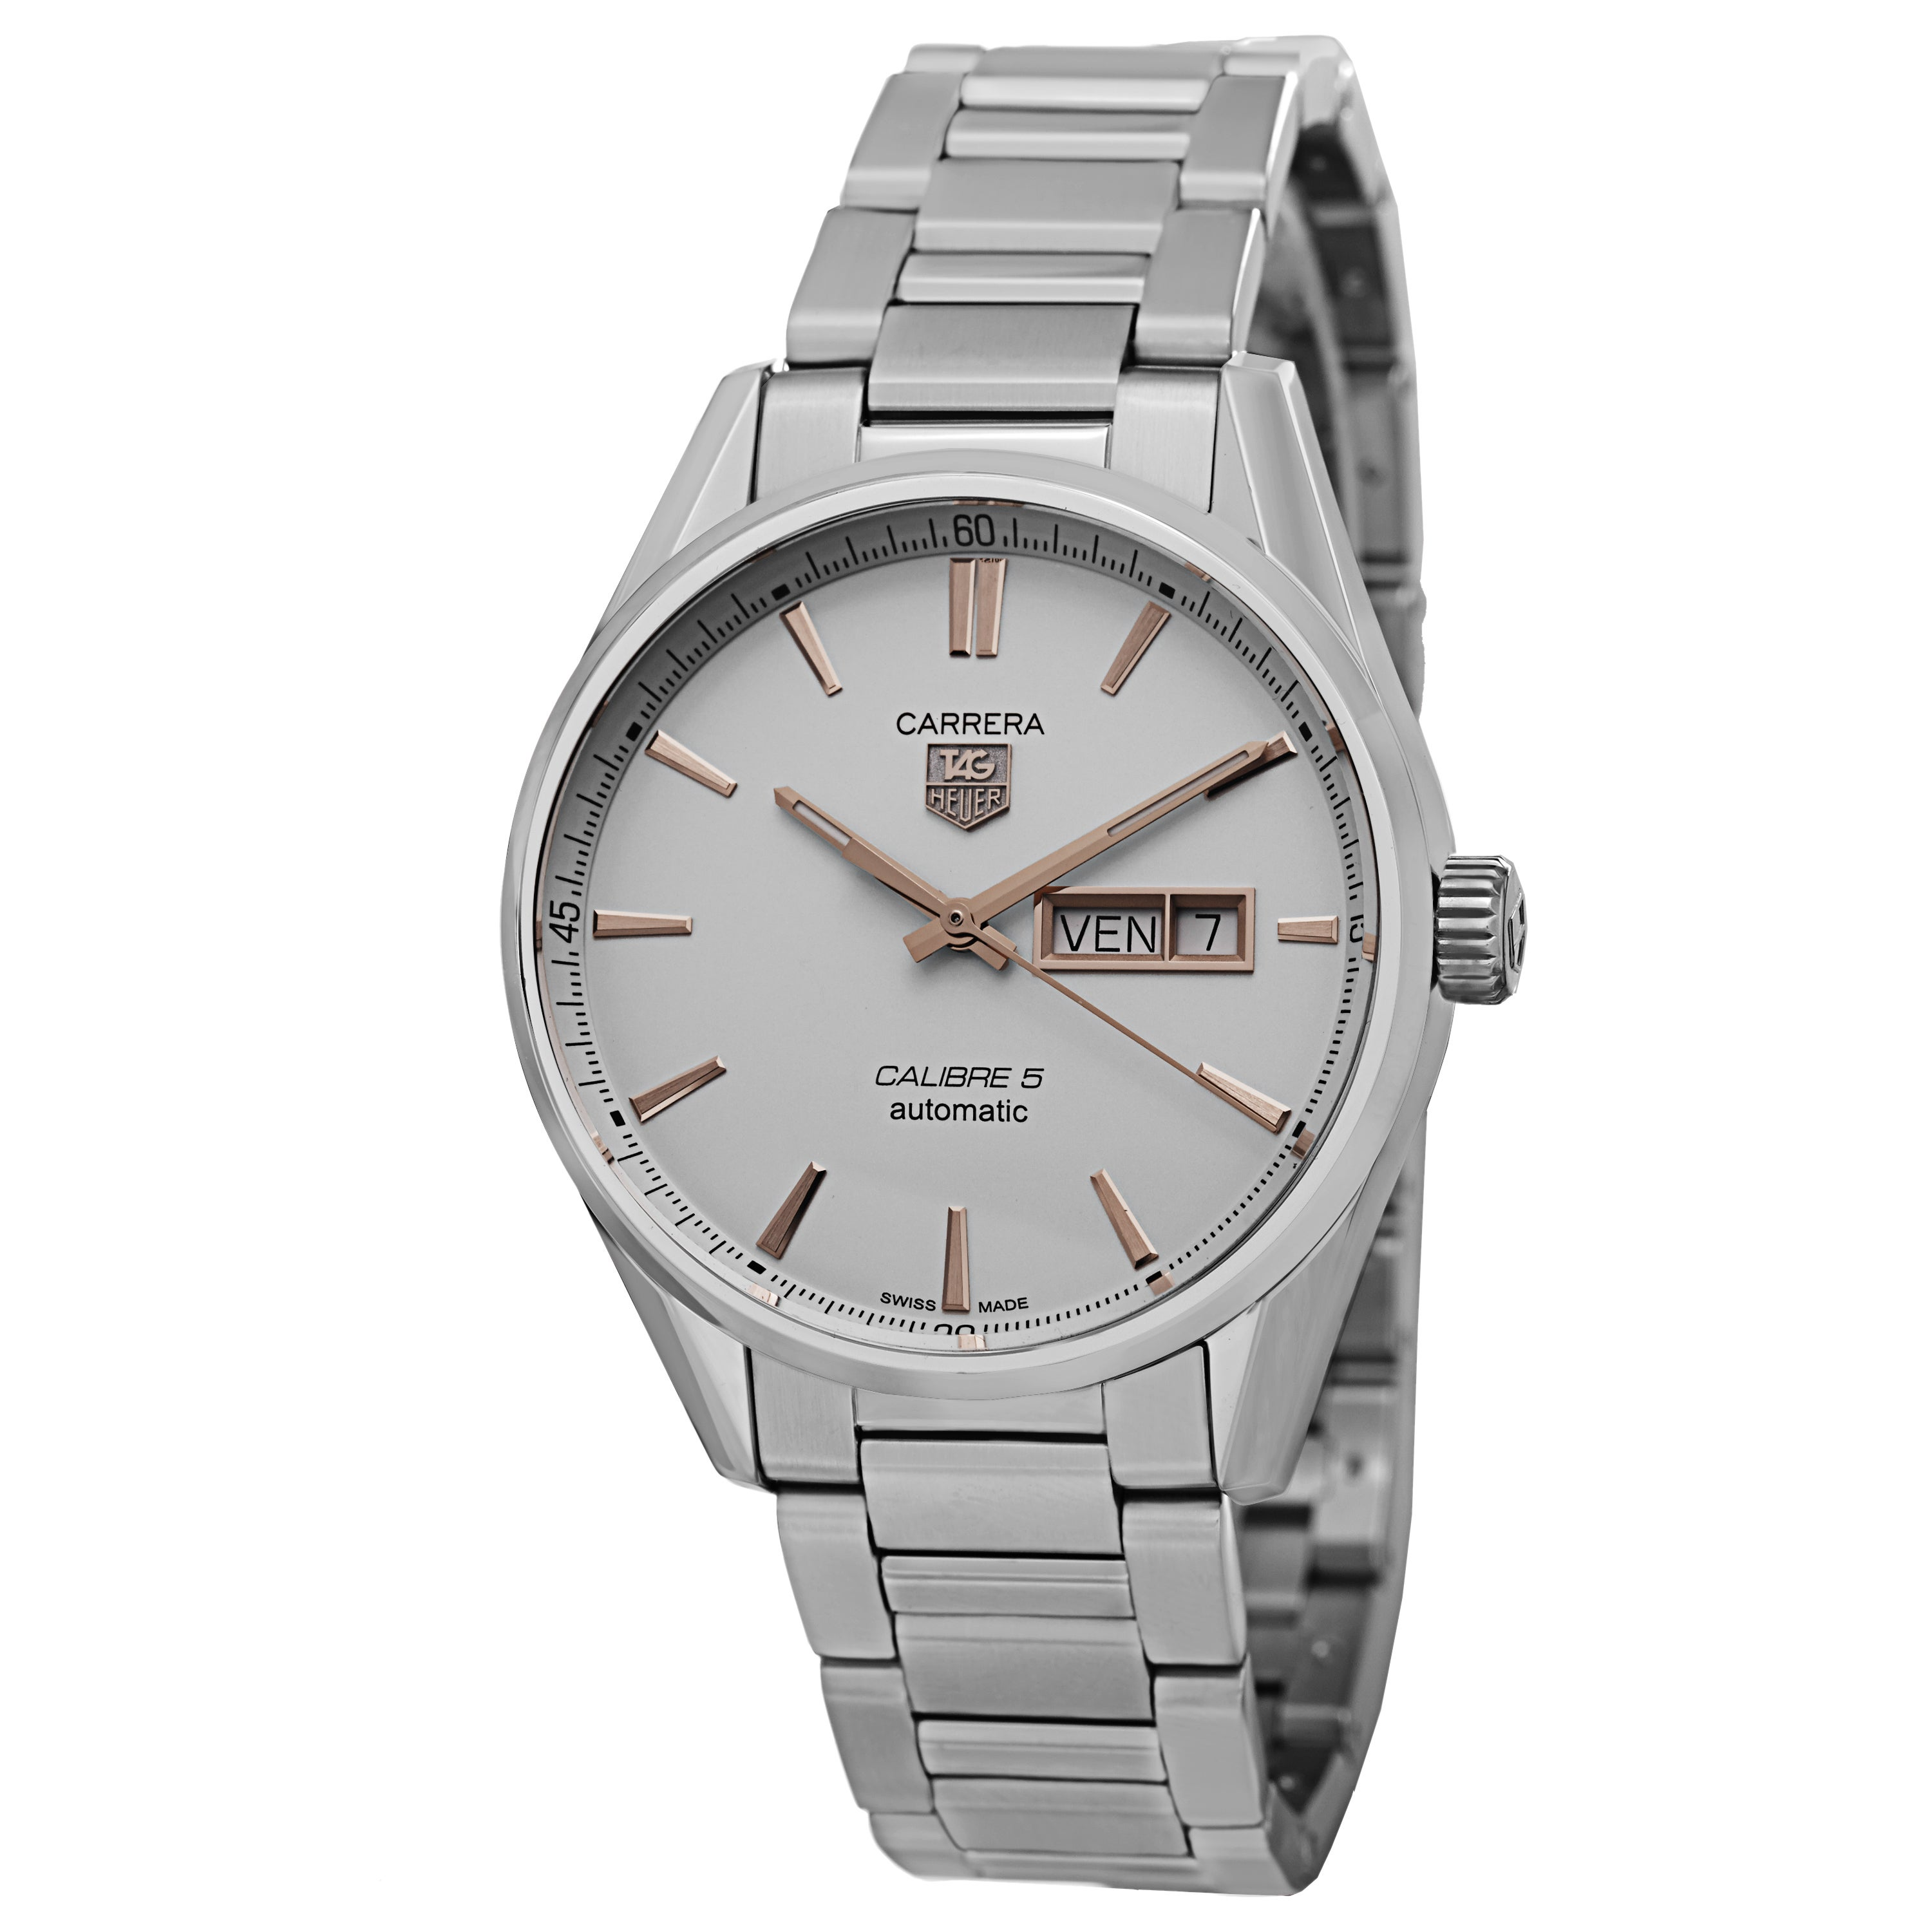 new style 213f2 e538a Tag Heuer Men's WAR201D.BA0723 'Carrera' Silver Dial Stainless Steel  Bracelet Automatic Watch